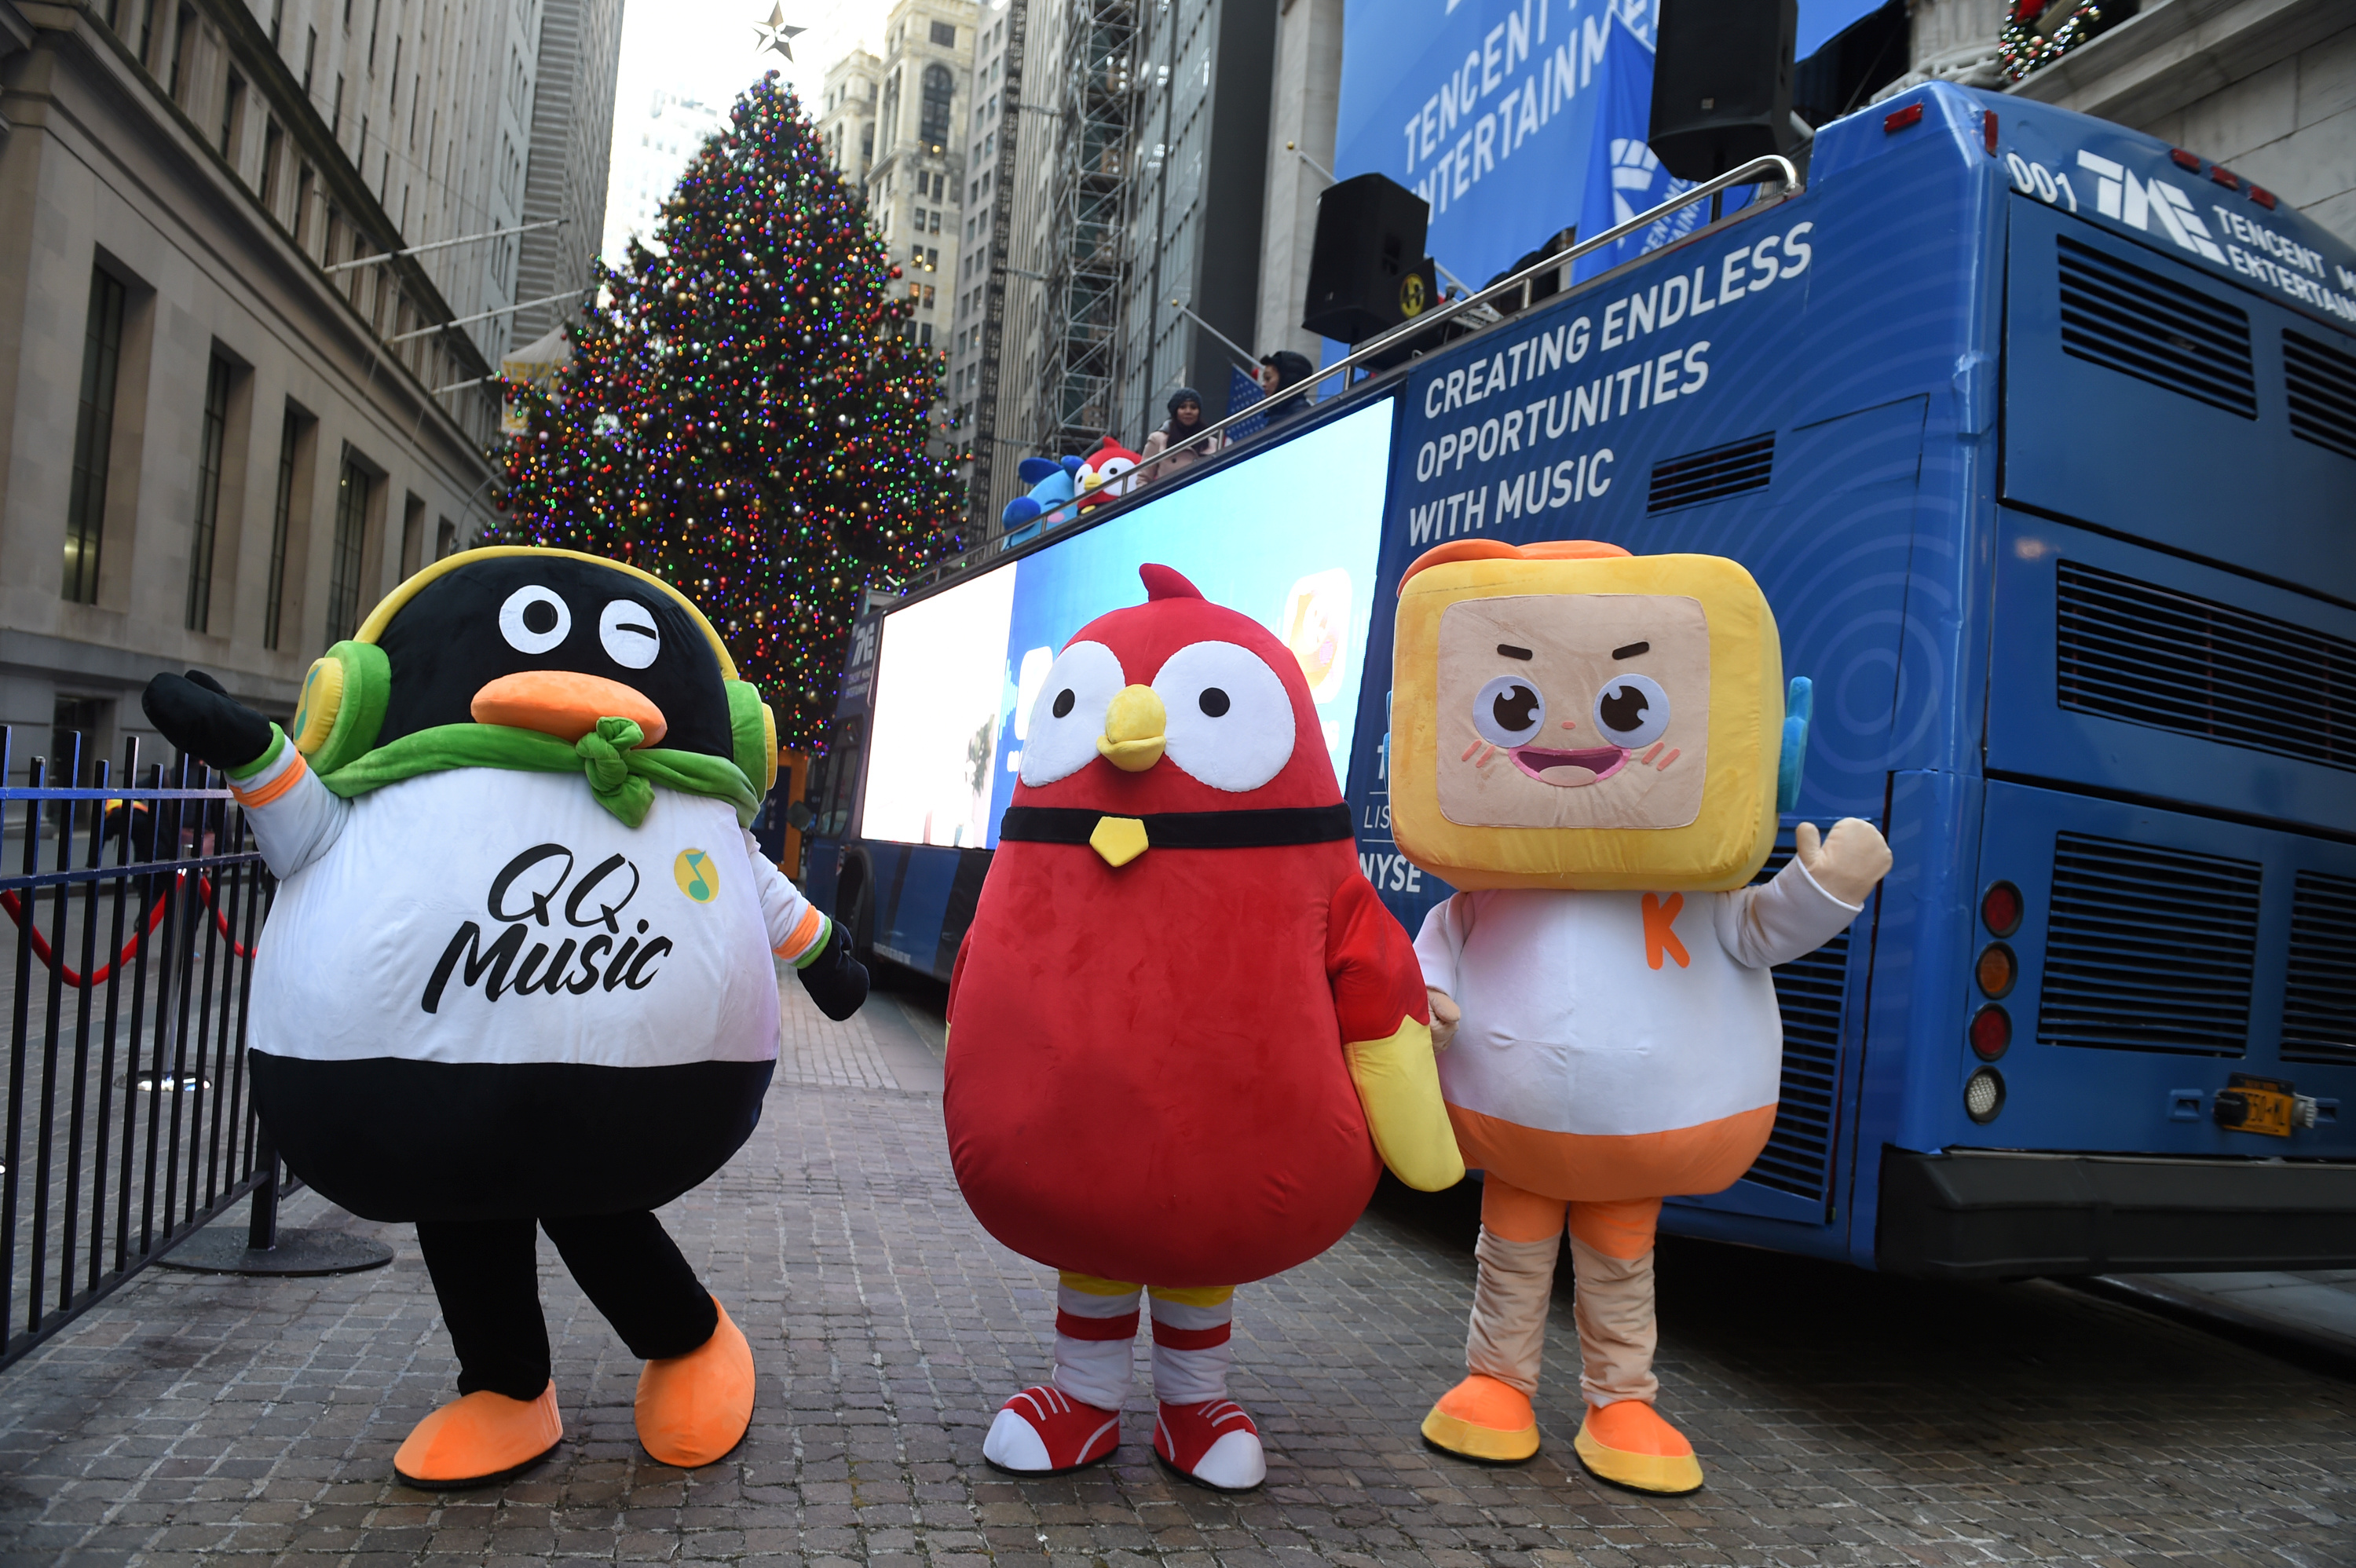 WeSing, Kugou, and Kuwo aren't growing like they used to for Tencent